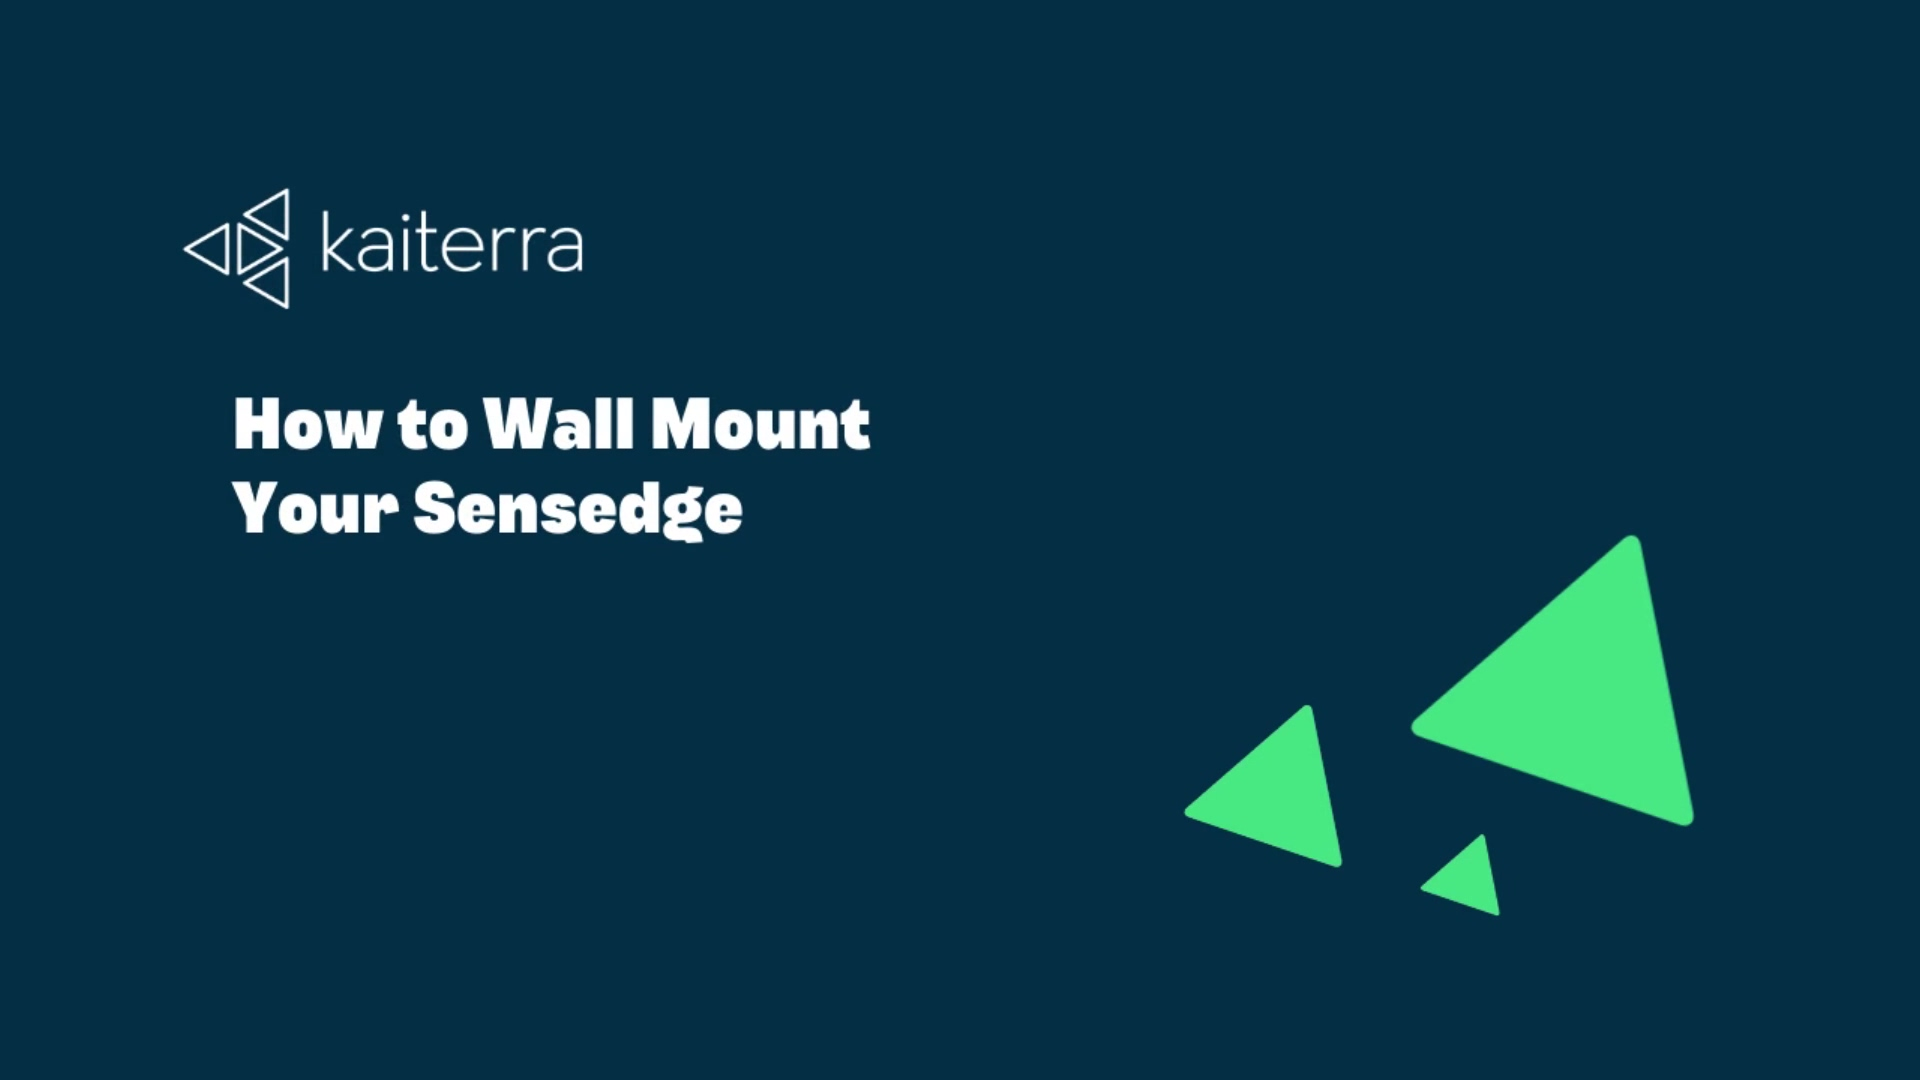 How to Wall Mount Your Sensedge